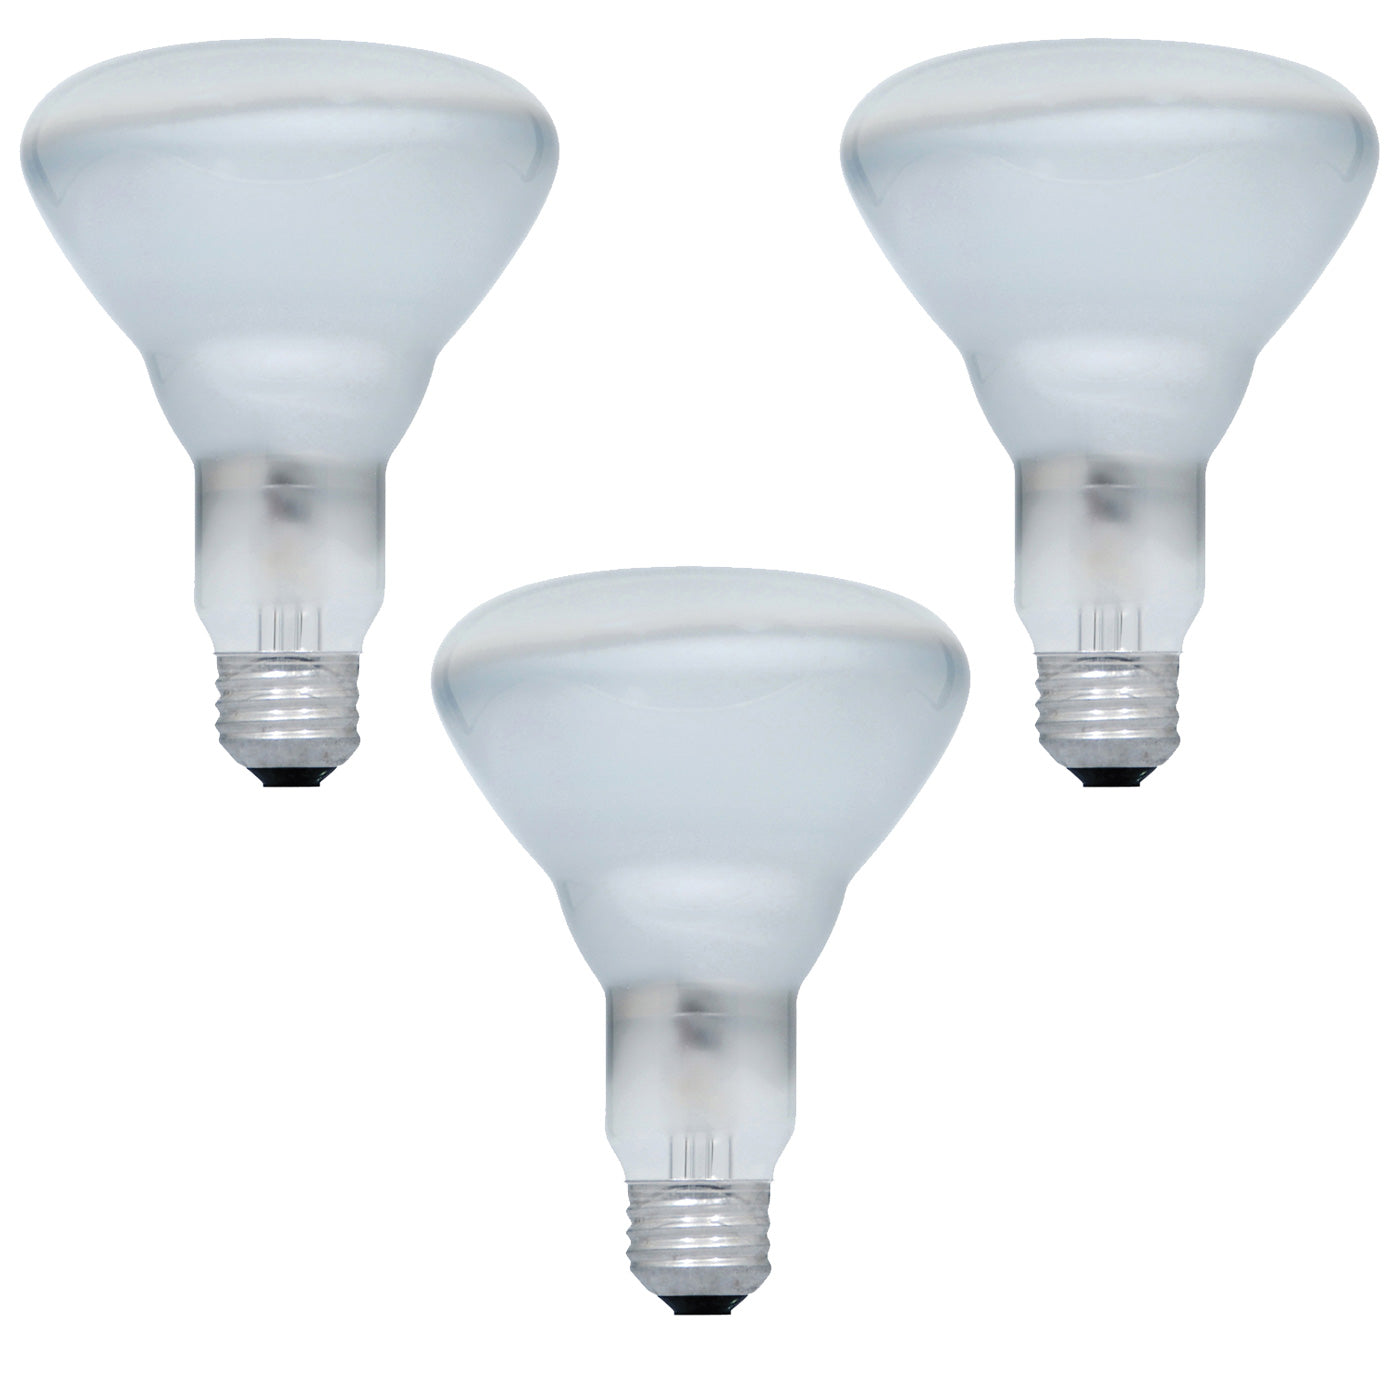 3PK - SYLVANIA 65w BR30 600Lm Flood 120V Incandescent Light Bulb